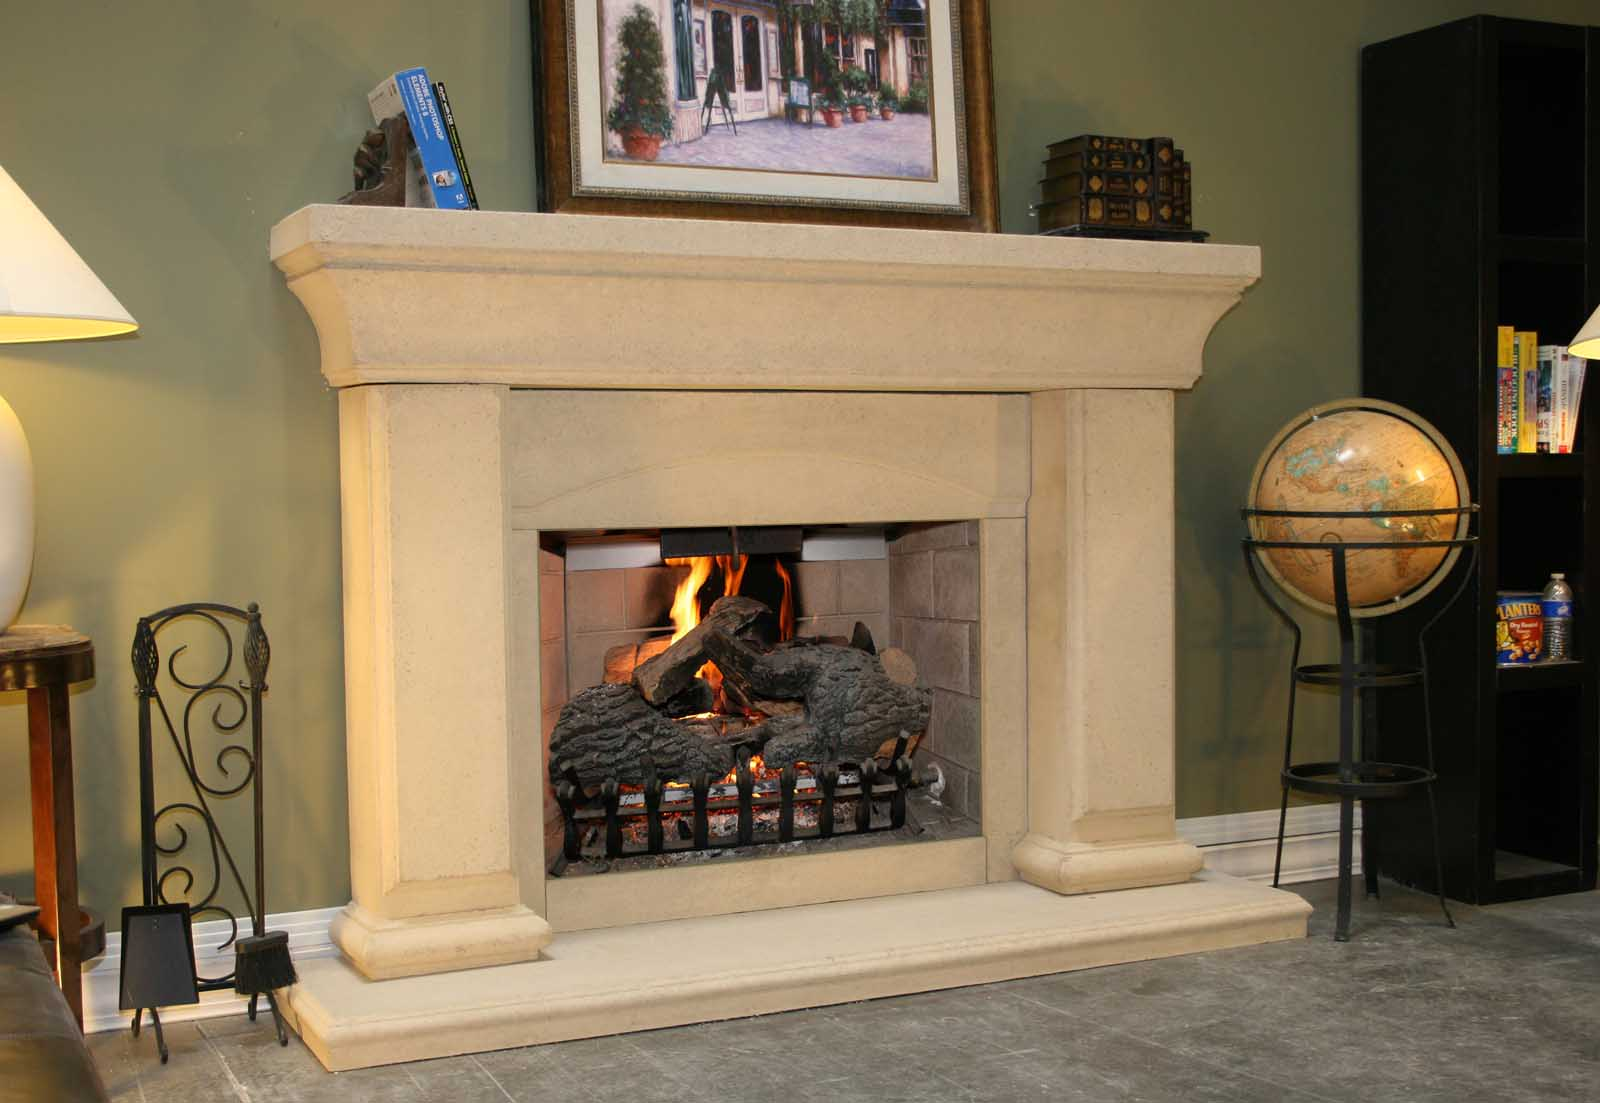 Mt215 Fireplace Mantels Fireplace Surrounds Iron Fireplace Doors And Screens In San Diego